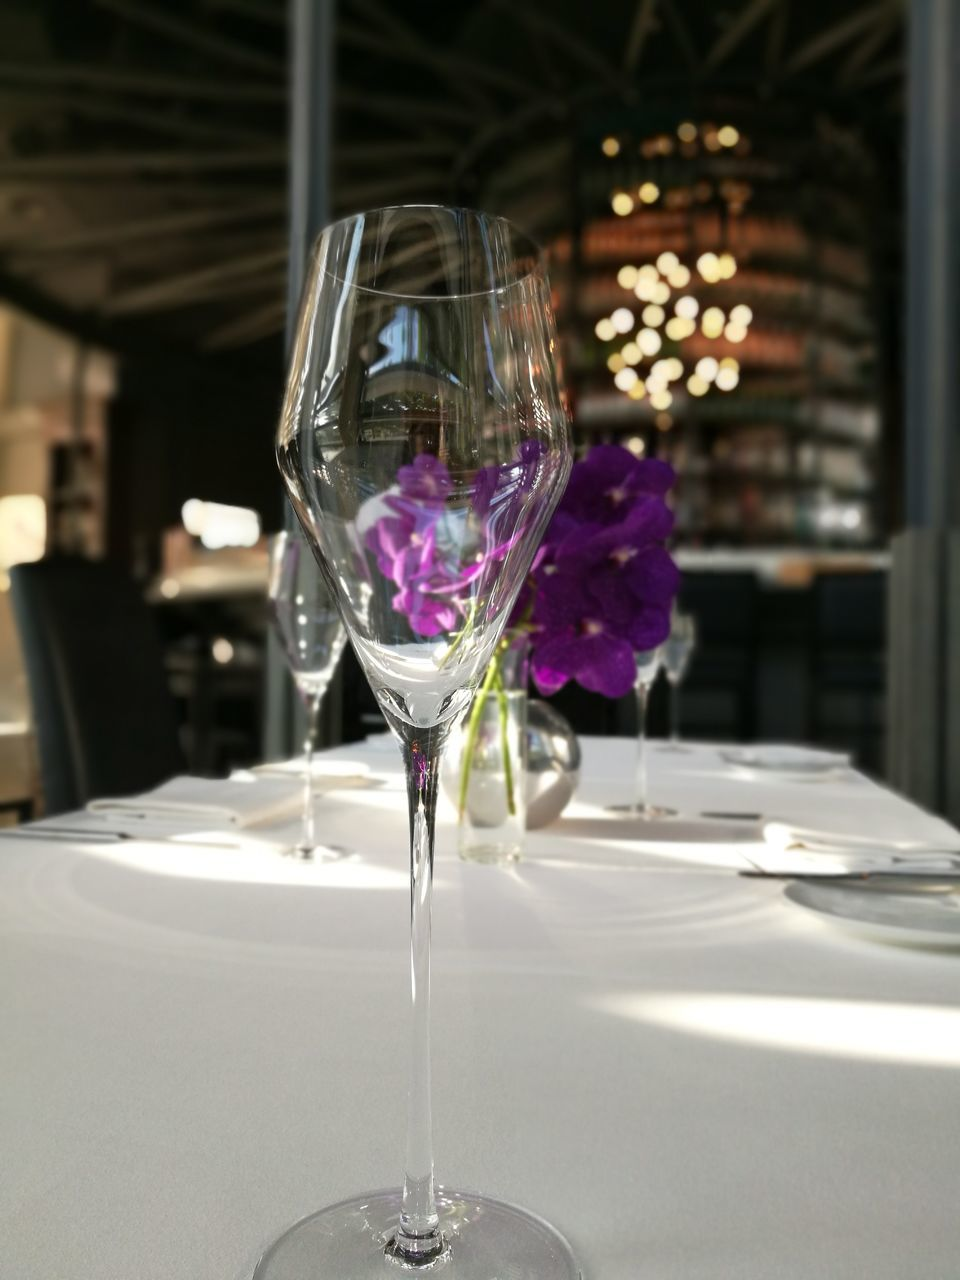 glass, indoors, wineglass, table, transparent, focus on foreground, glass - material, food and drink, close-up, freshness, refreshment, drink, no people, alcohol, restaurant, wine, household equipment, drinking glass, business, luxury, purple, setting